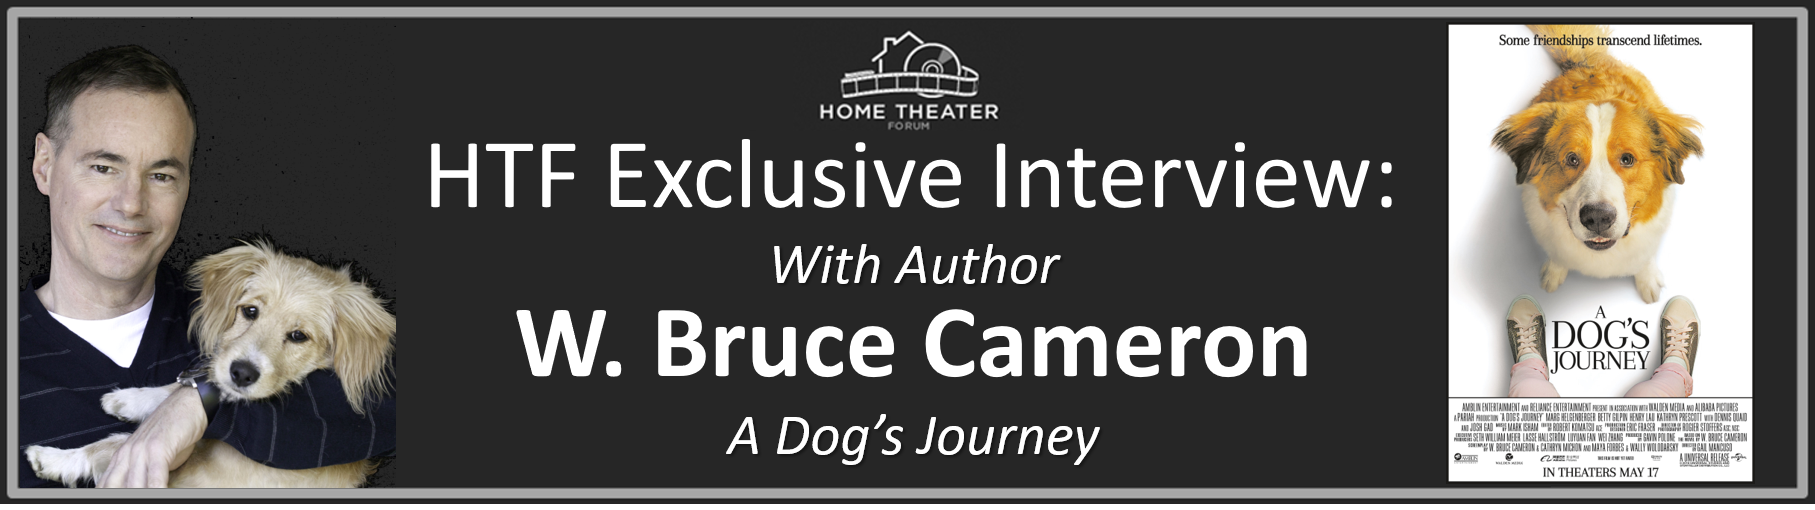 W Bruce Cameron Interview Banner2.png